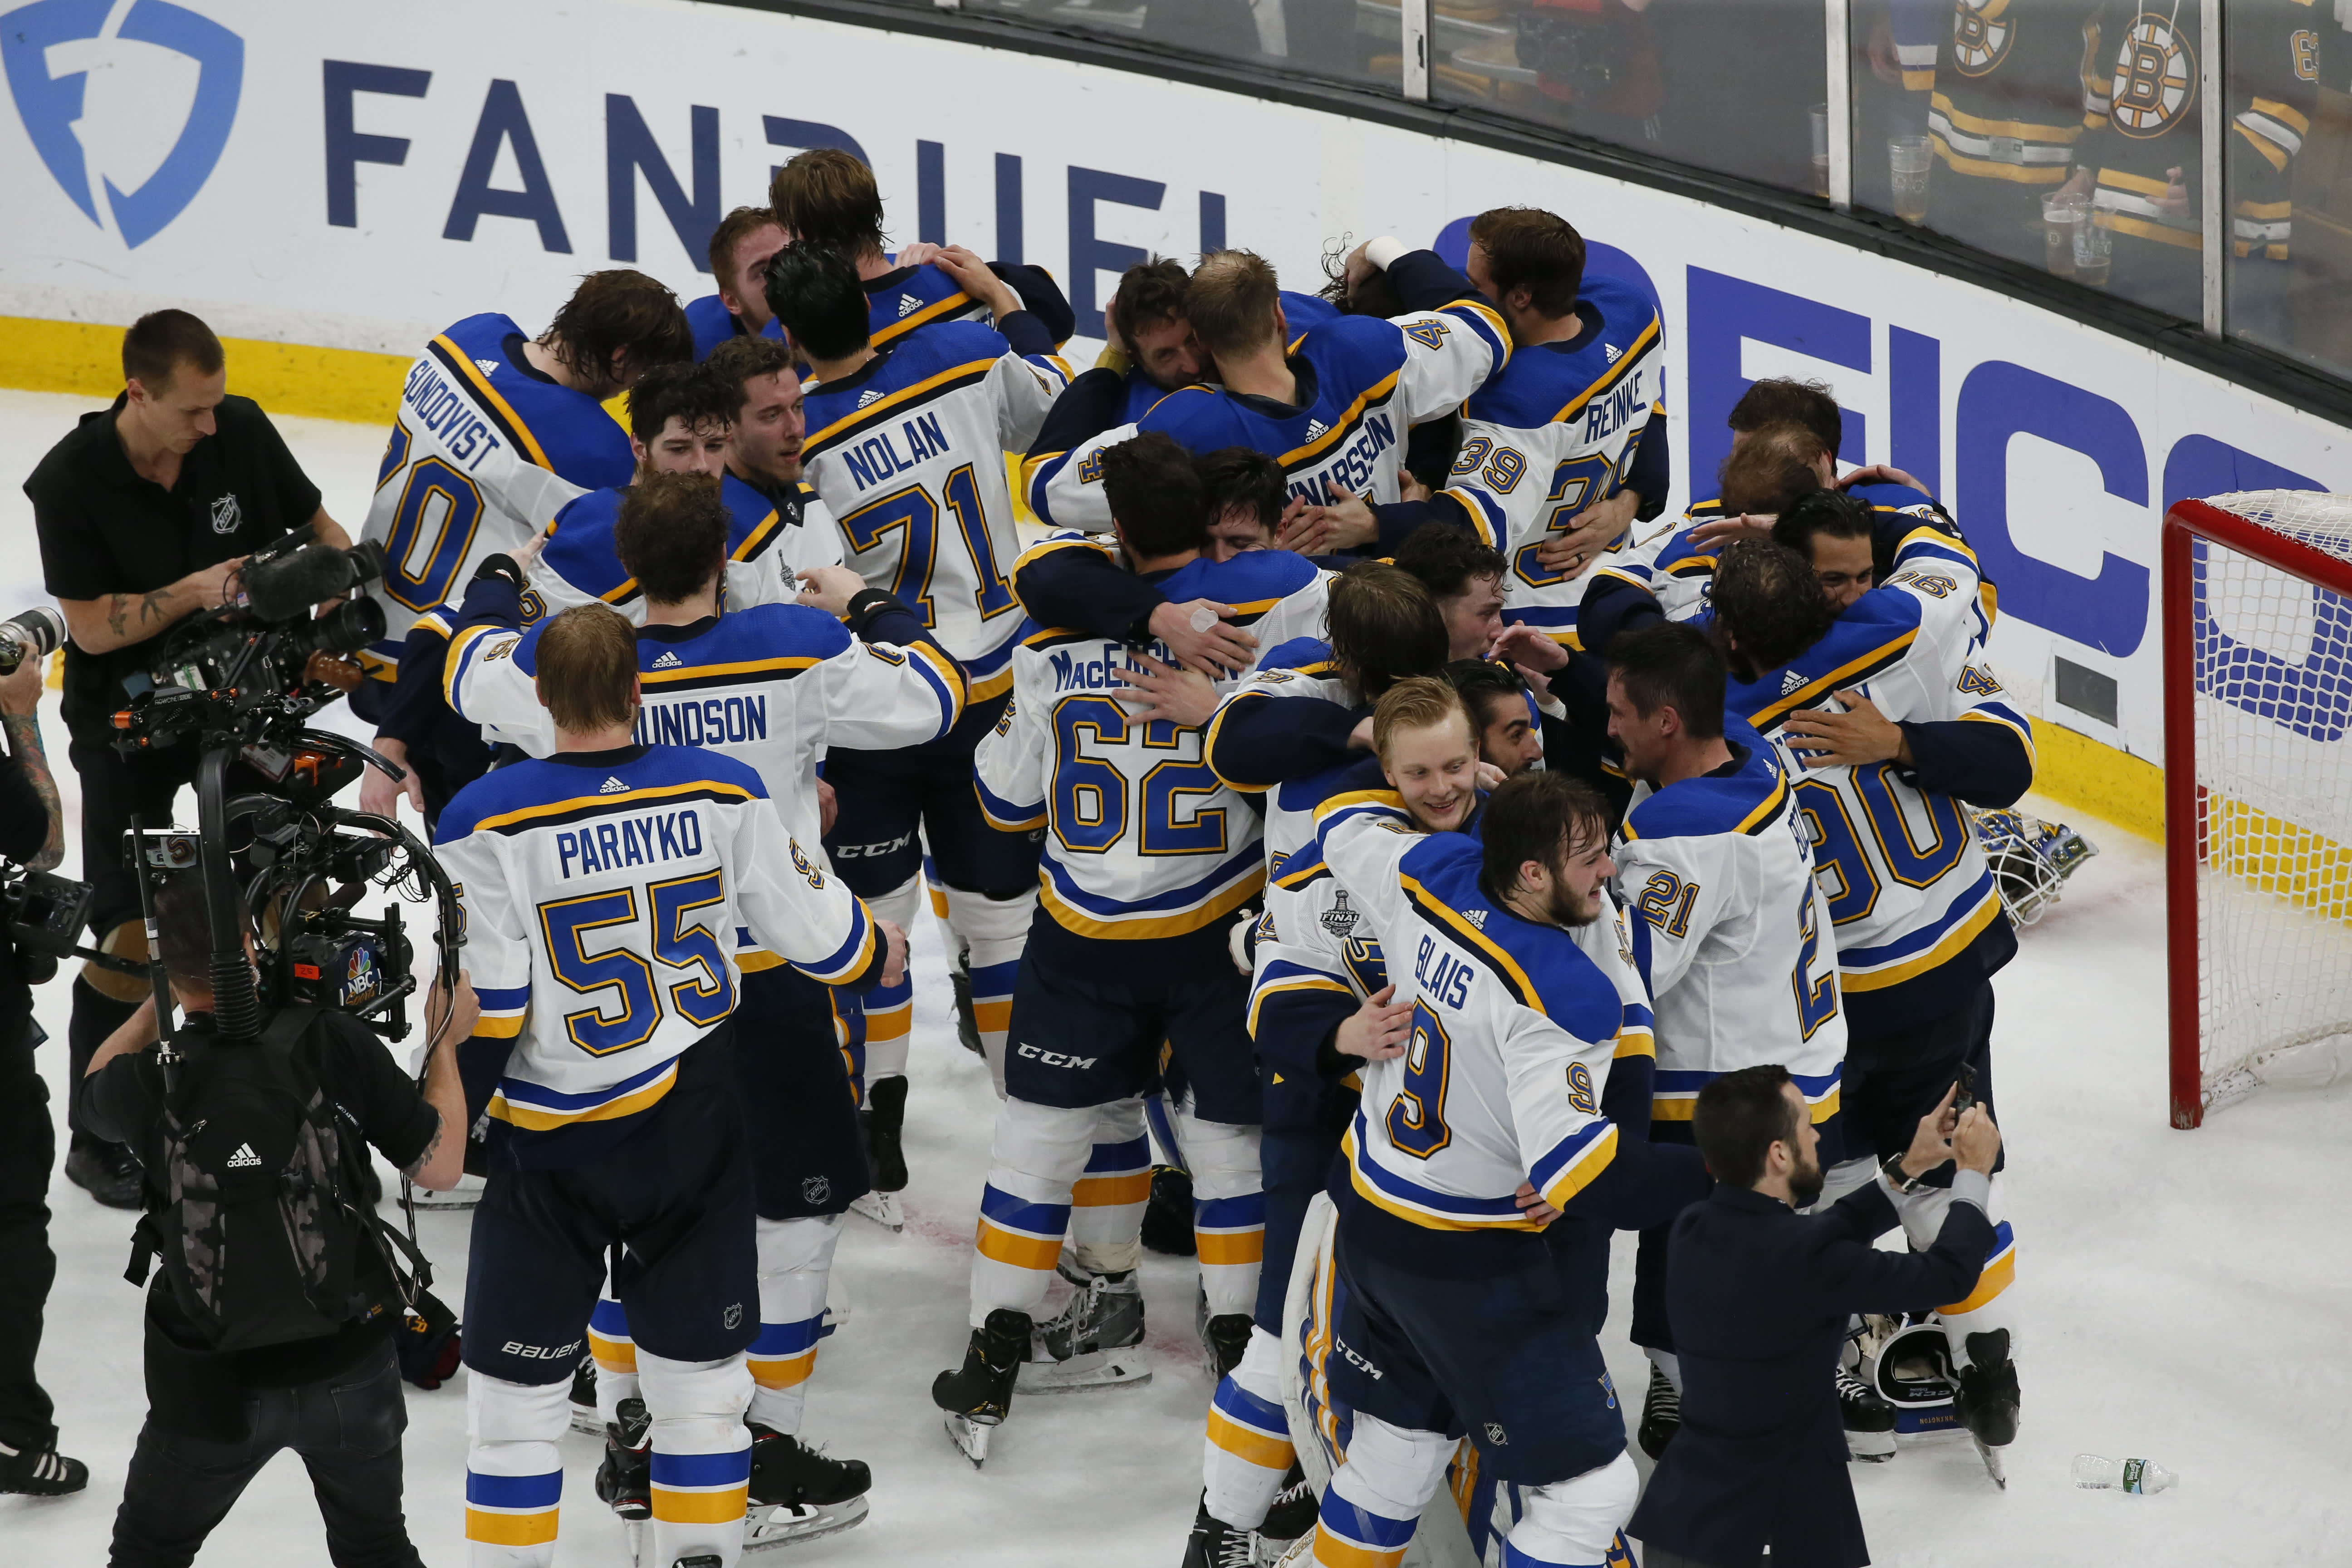 St Louis Blues beat Boston Bruins to clinch maiden NHL's Stanley Cup title